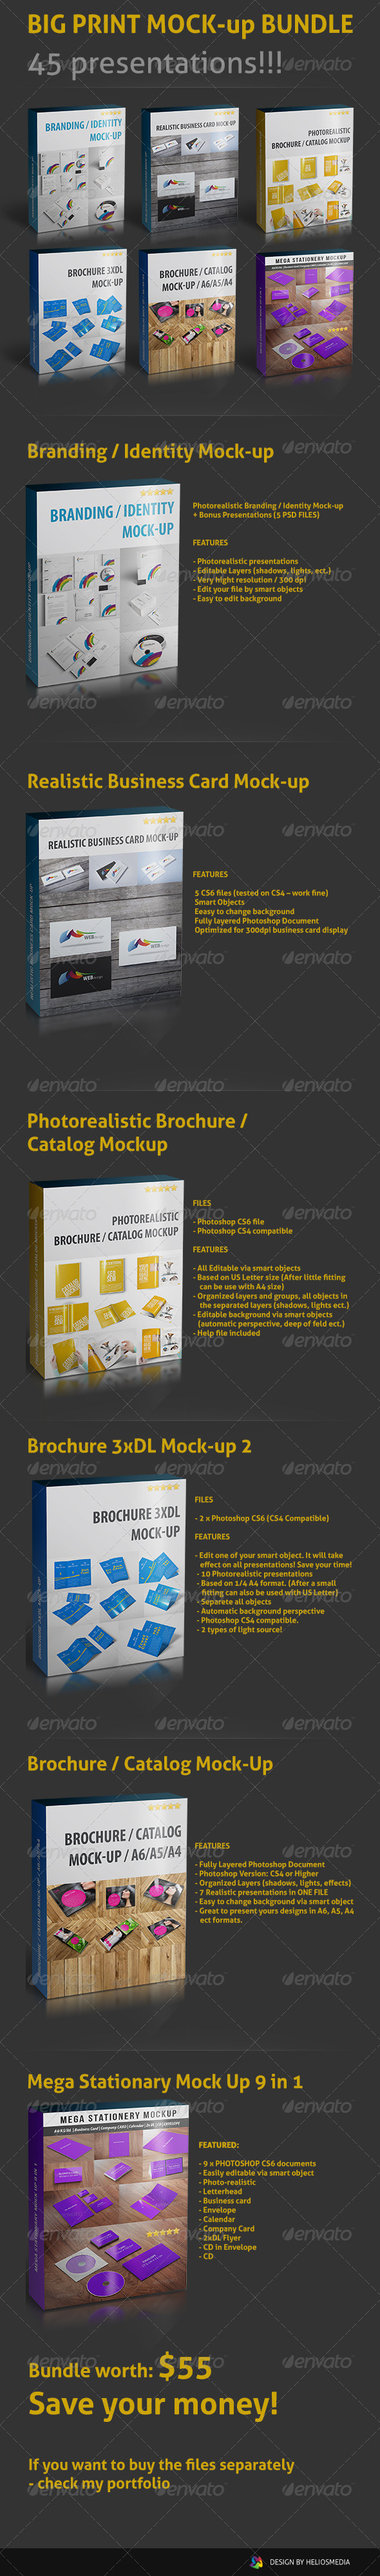 GraphicRiver Big Print Mock-up Bundle 4595621